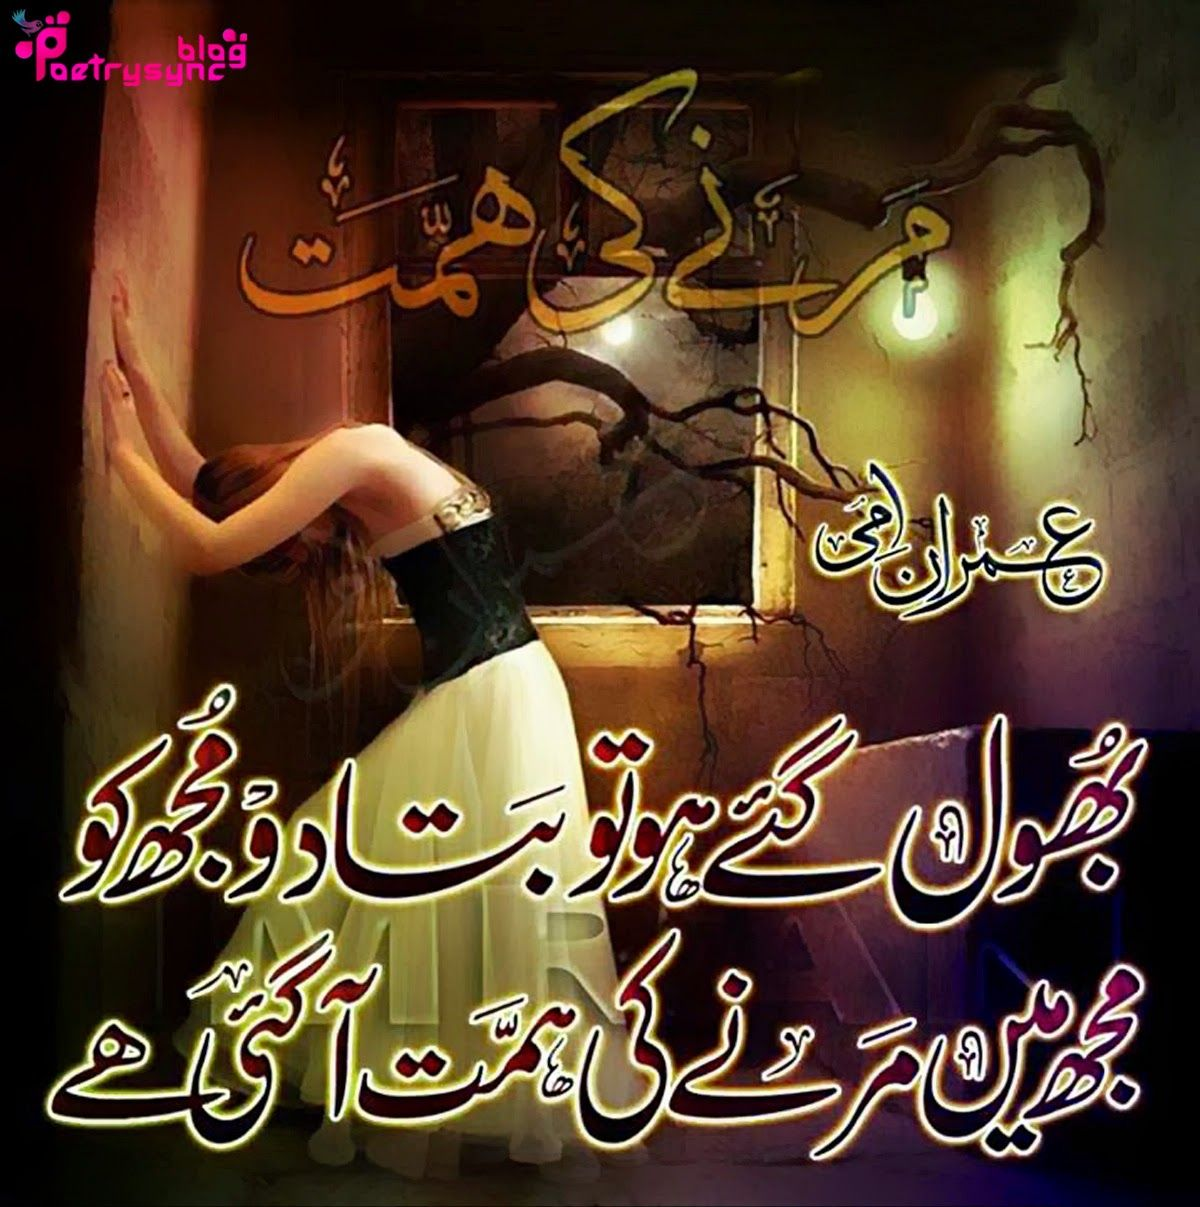 Sad Quotes About Love In Urdu Facebook : urdu poetry poetry quotes in love quotes text quotes facebook quotes ...